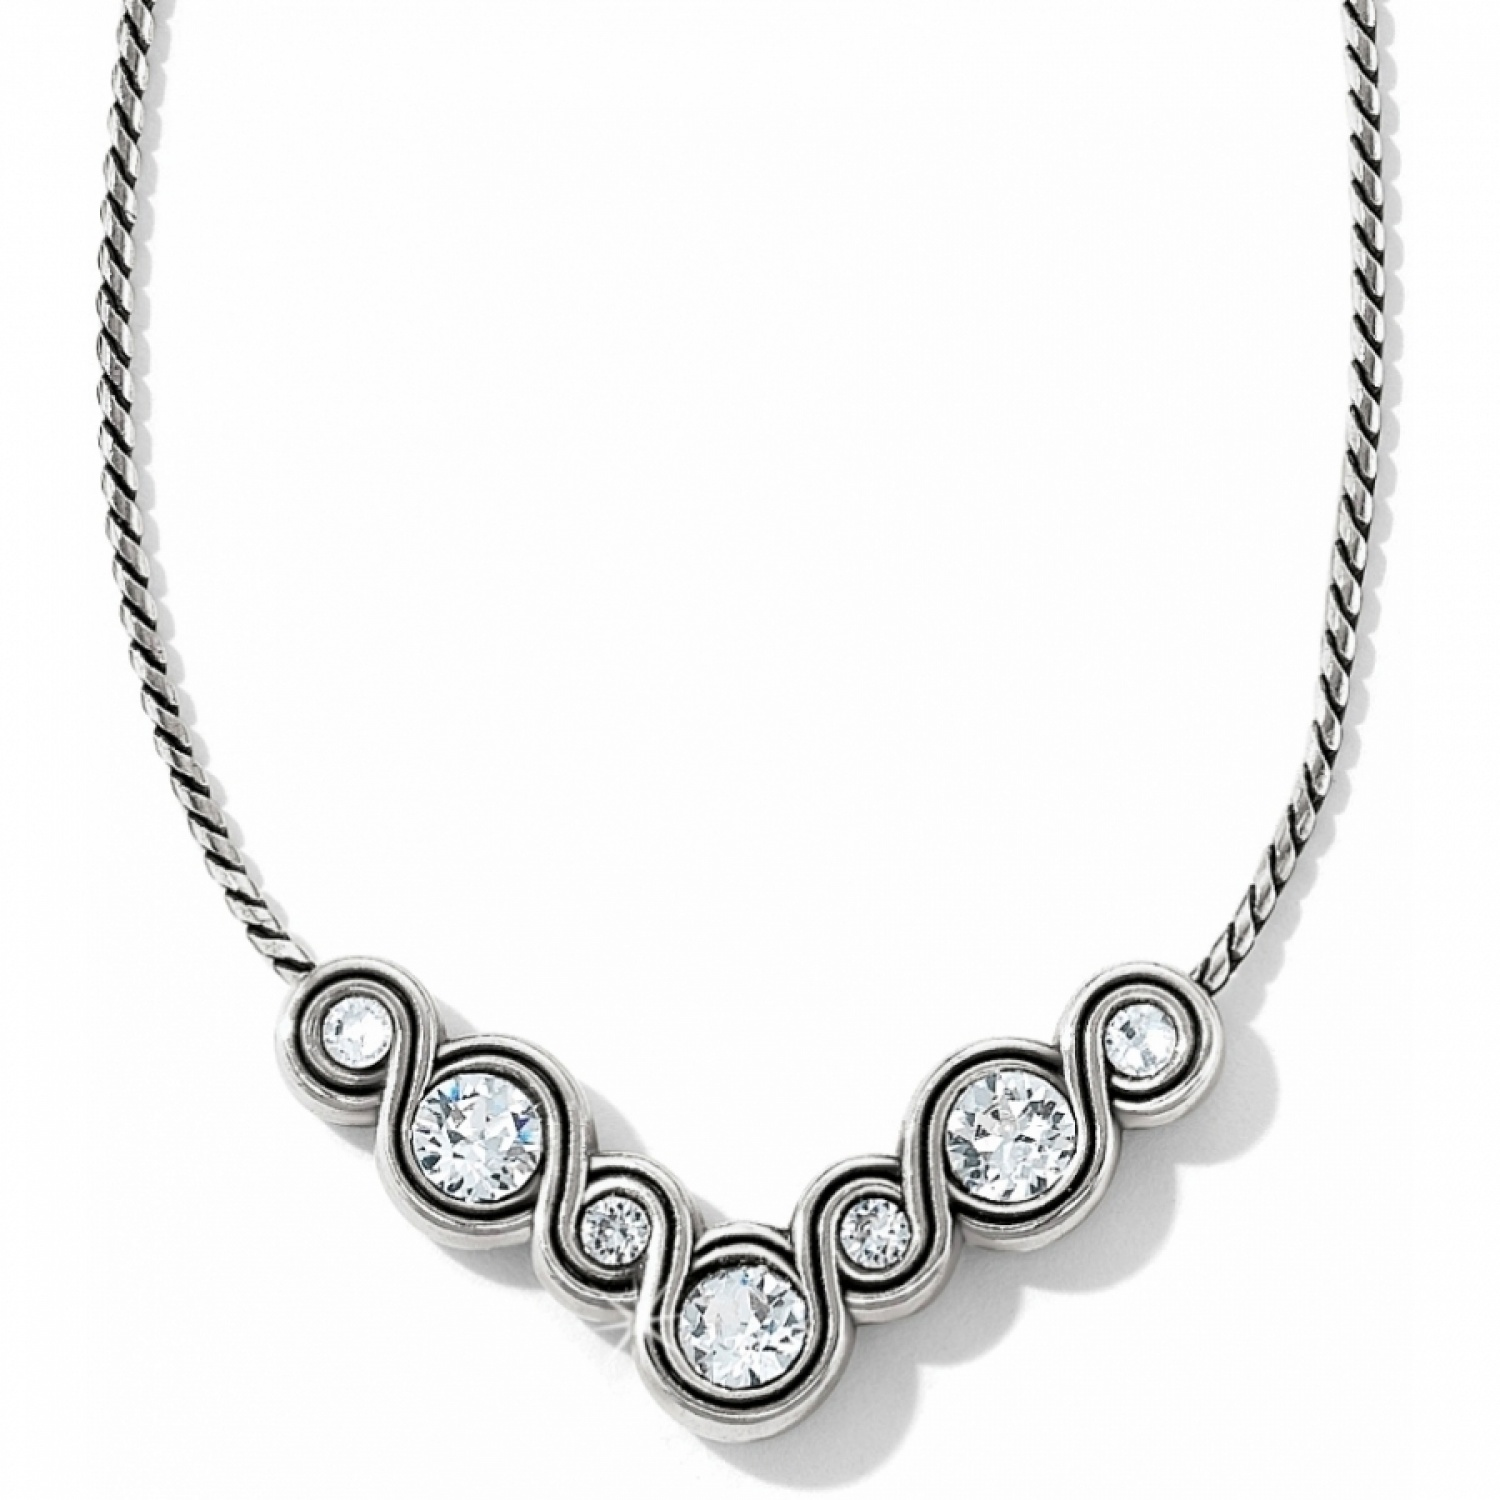 white en necklace infinity diamond nazar s jewelry sign fine gold